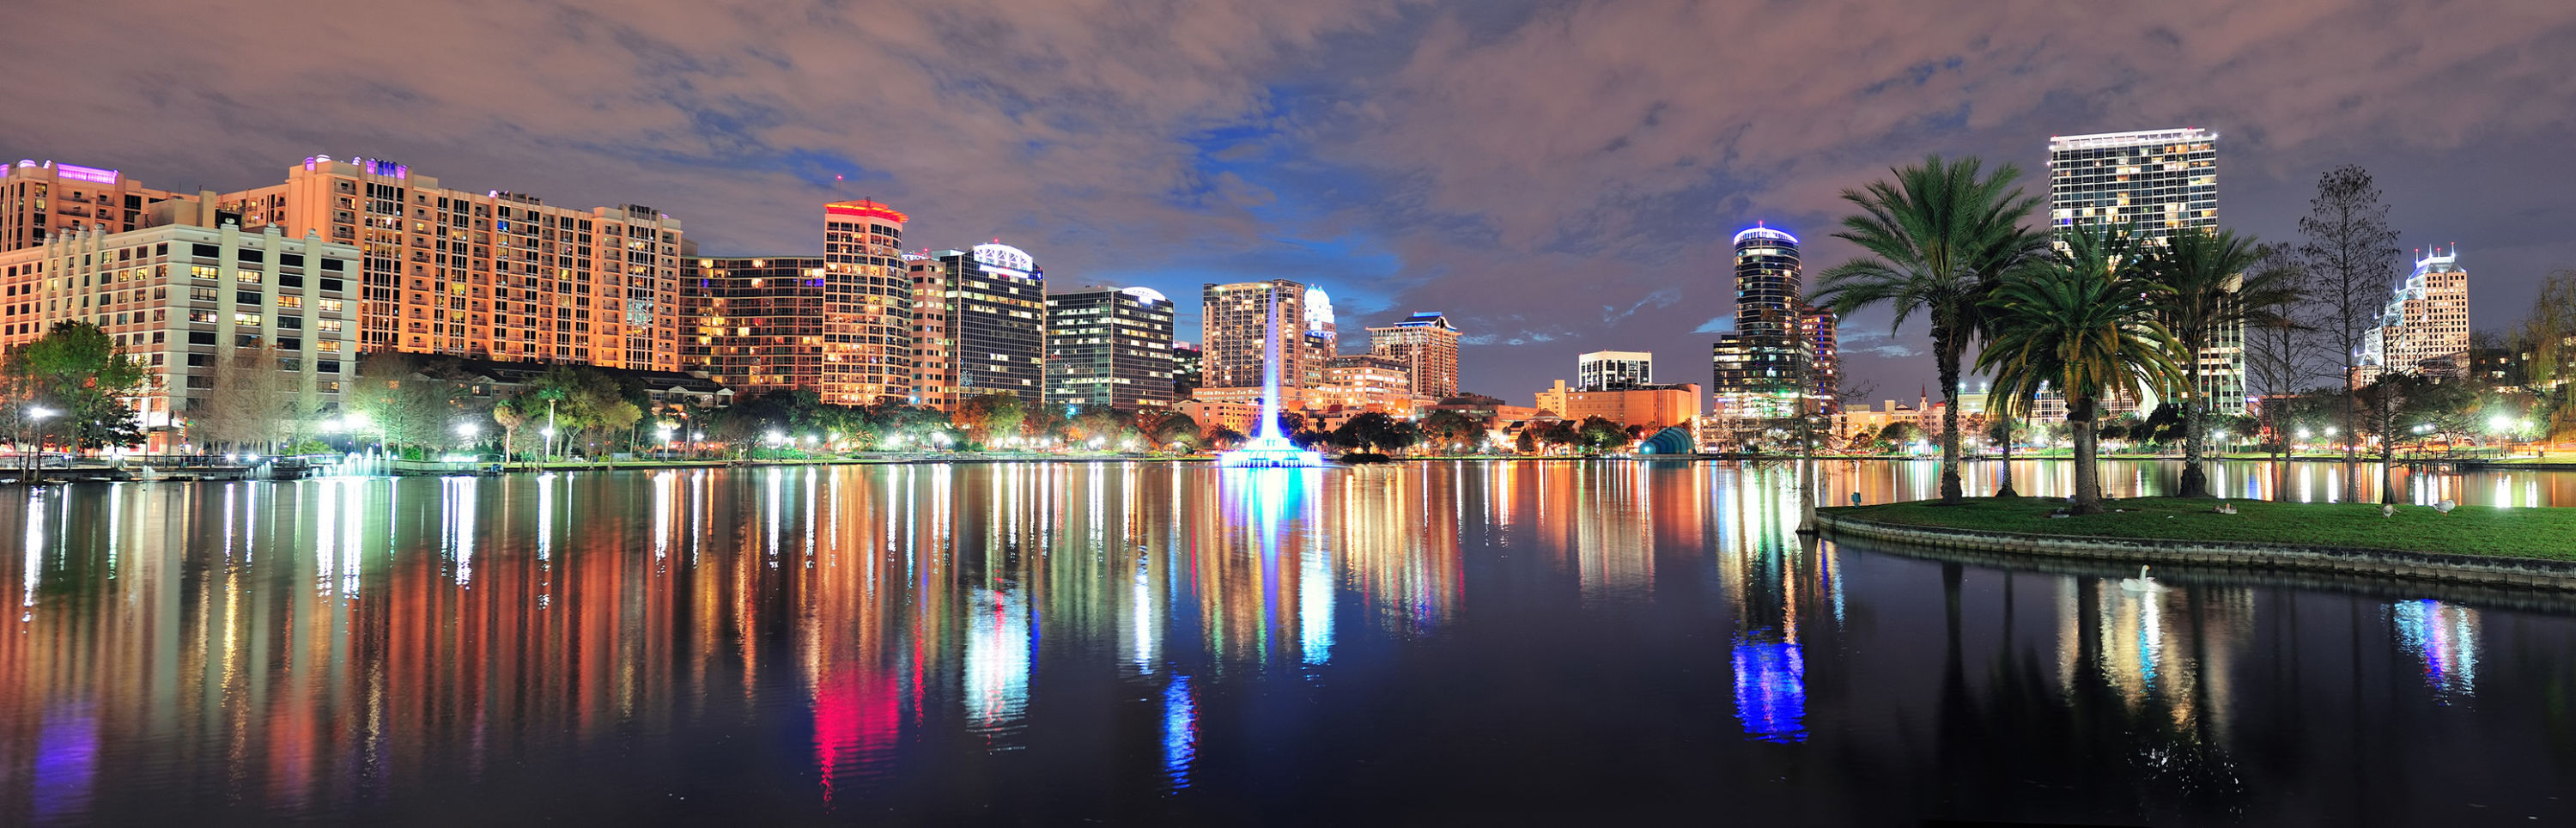 Manufacturing & Technology - Why Orlando?